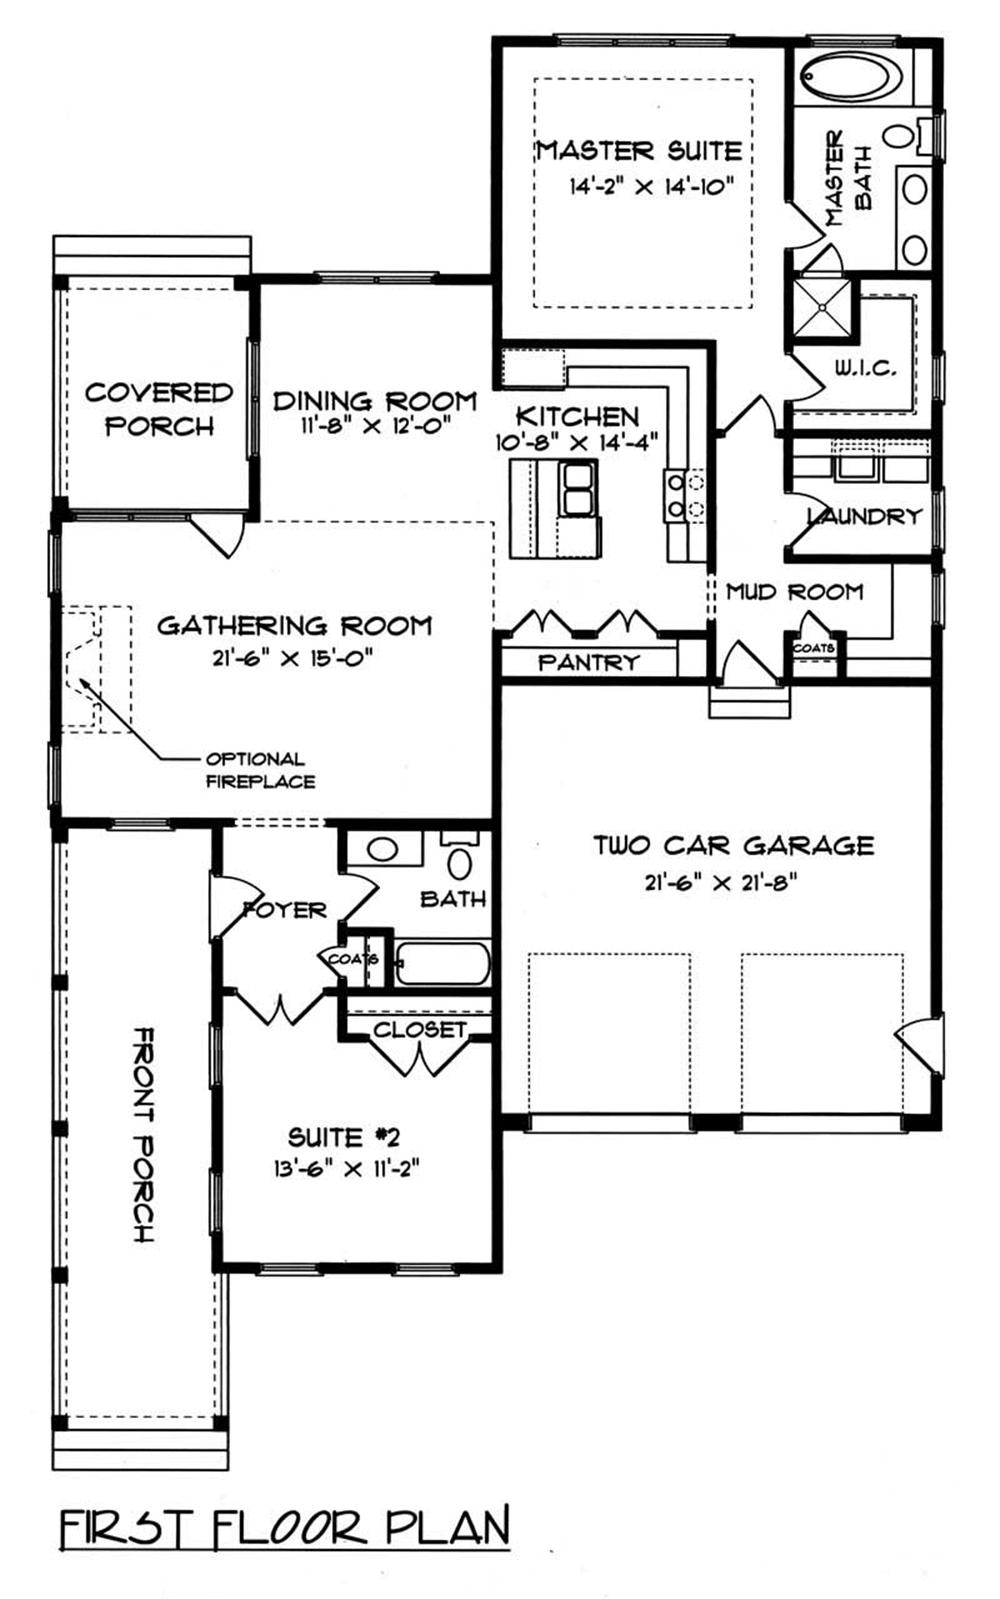 House Plan EDG-1539-A2 Main Floor Plan